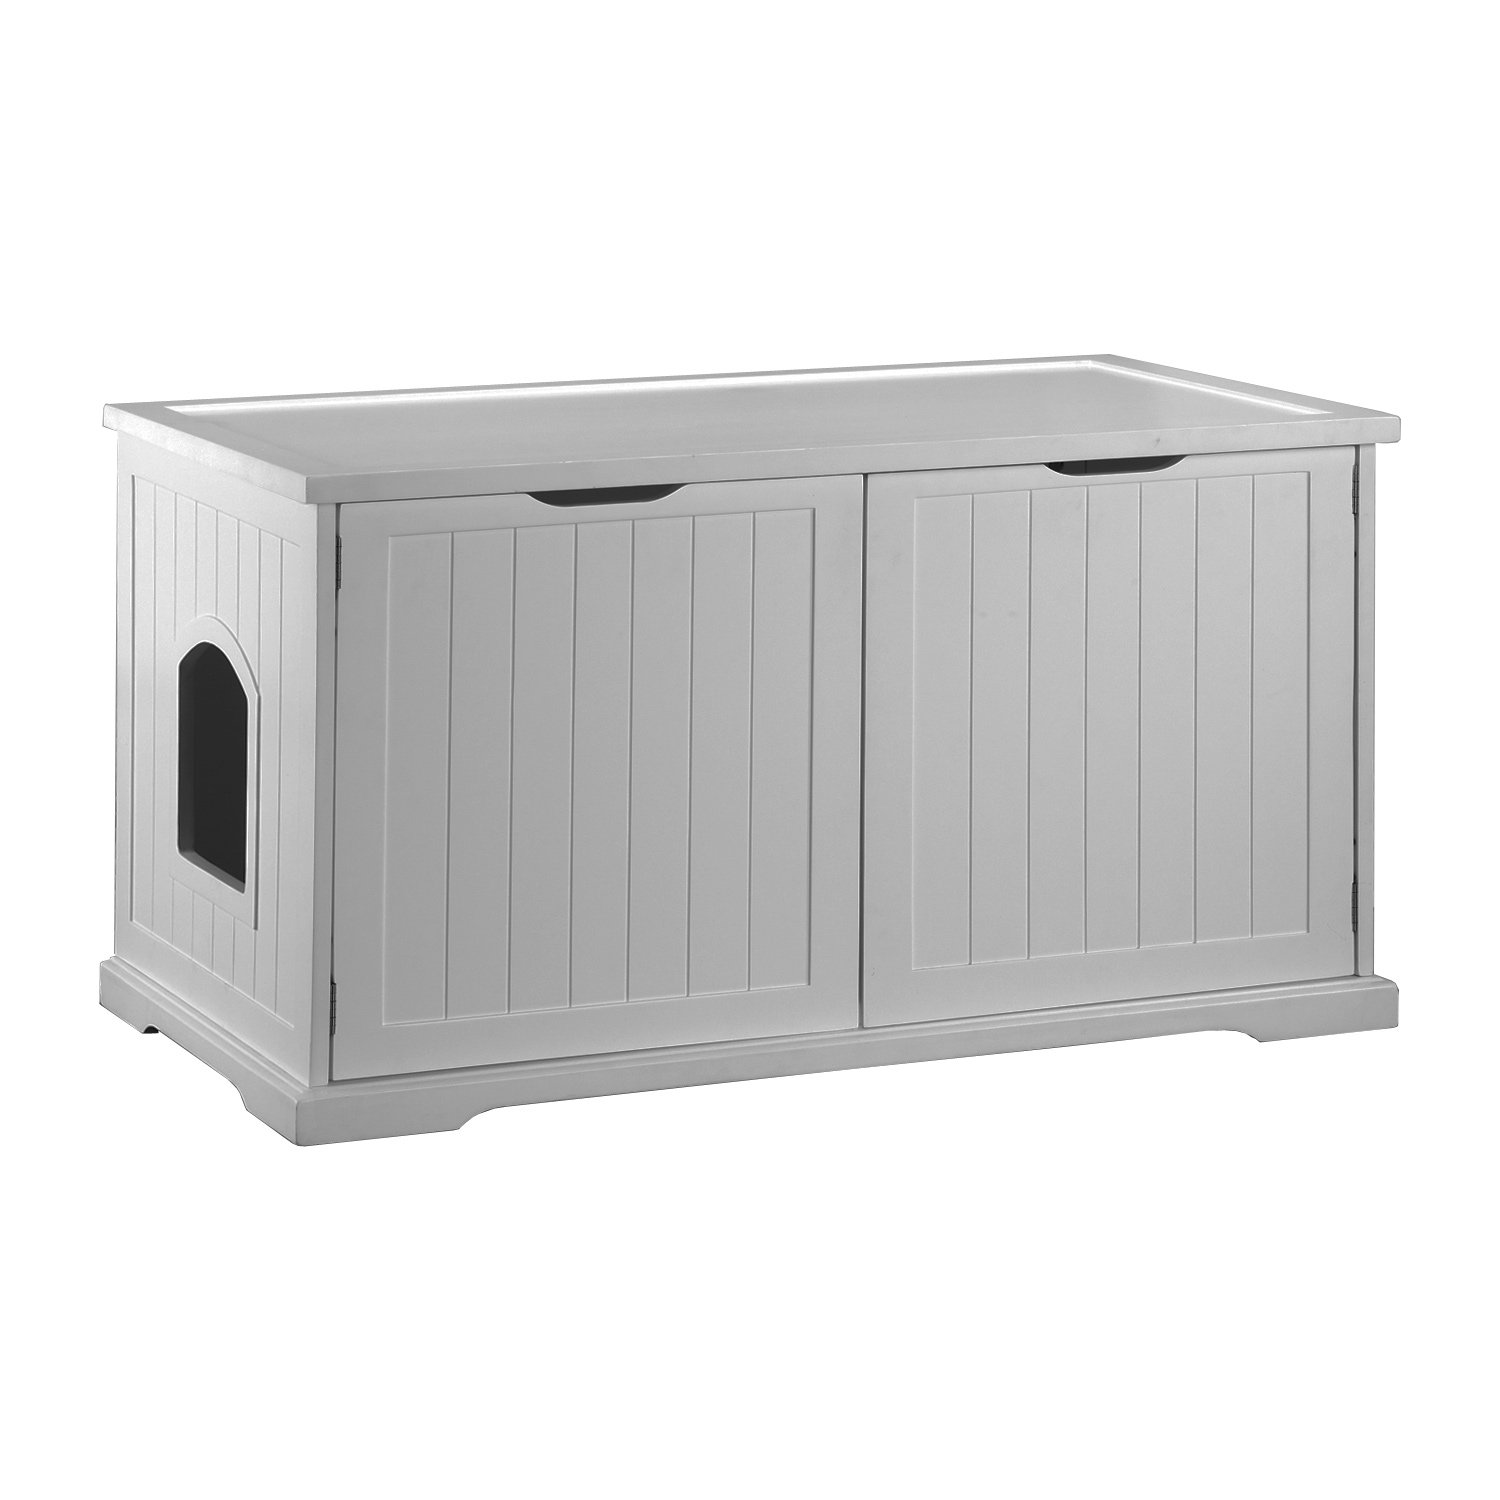 Merry Products Cat Washroom Bench, White by Merry (Image #1)